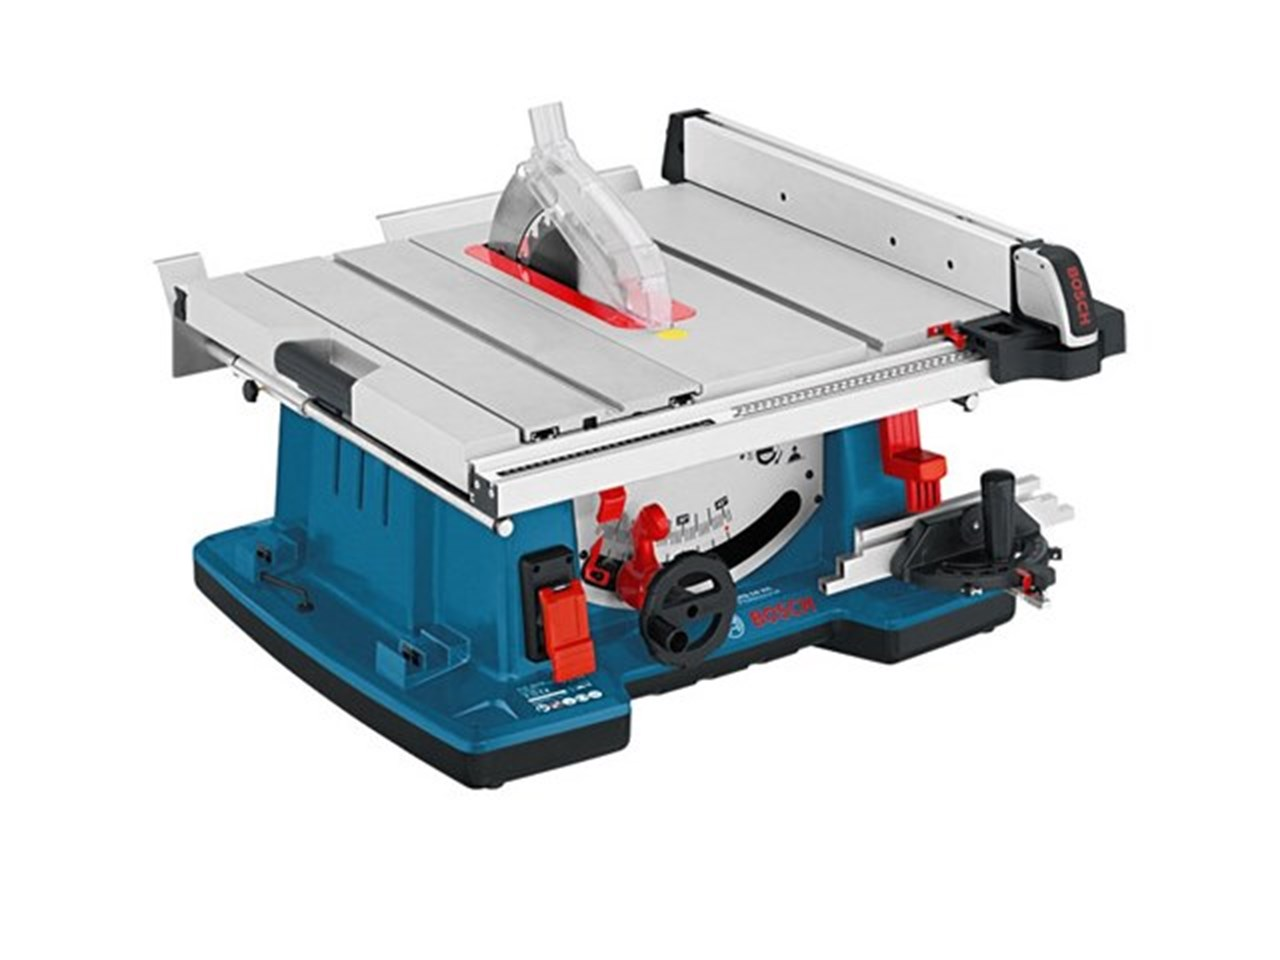 Bosch gts10 xc table saw with carriage 110v for 110v table saw